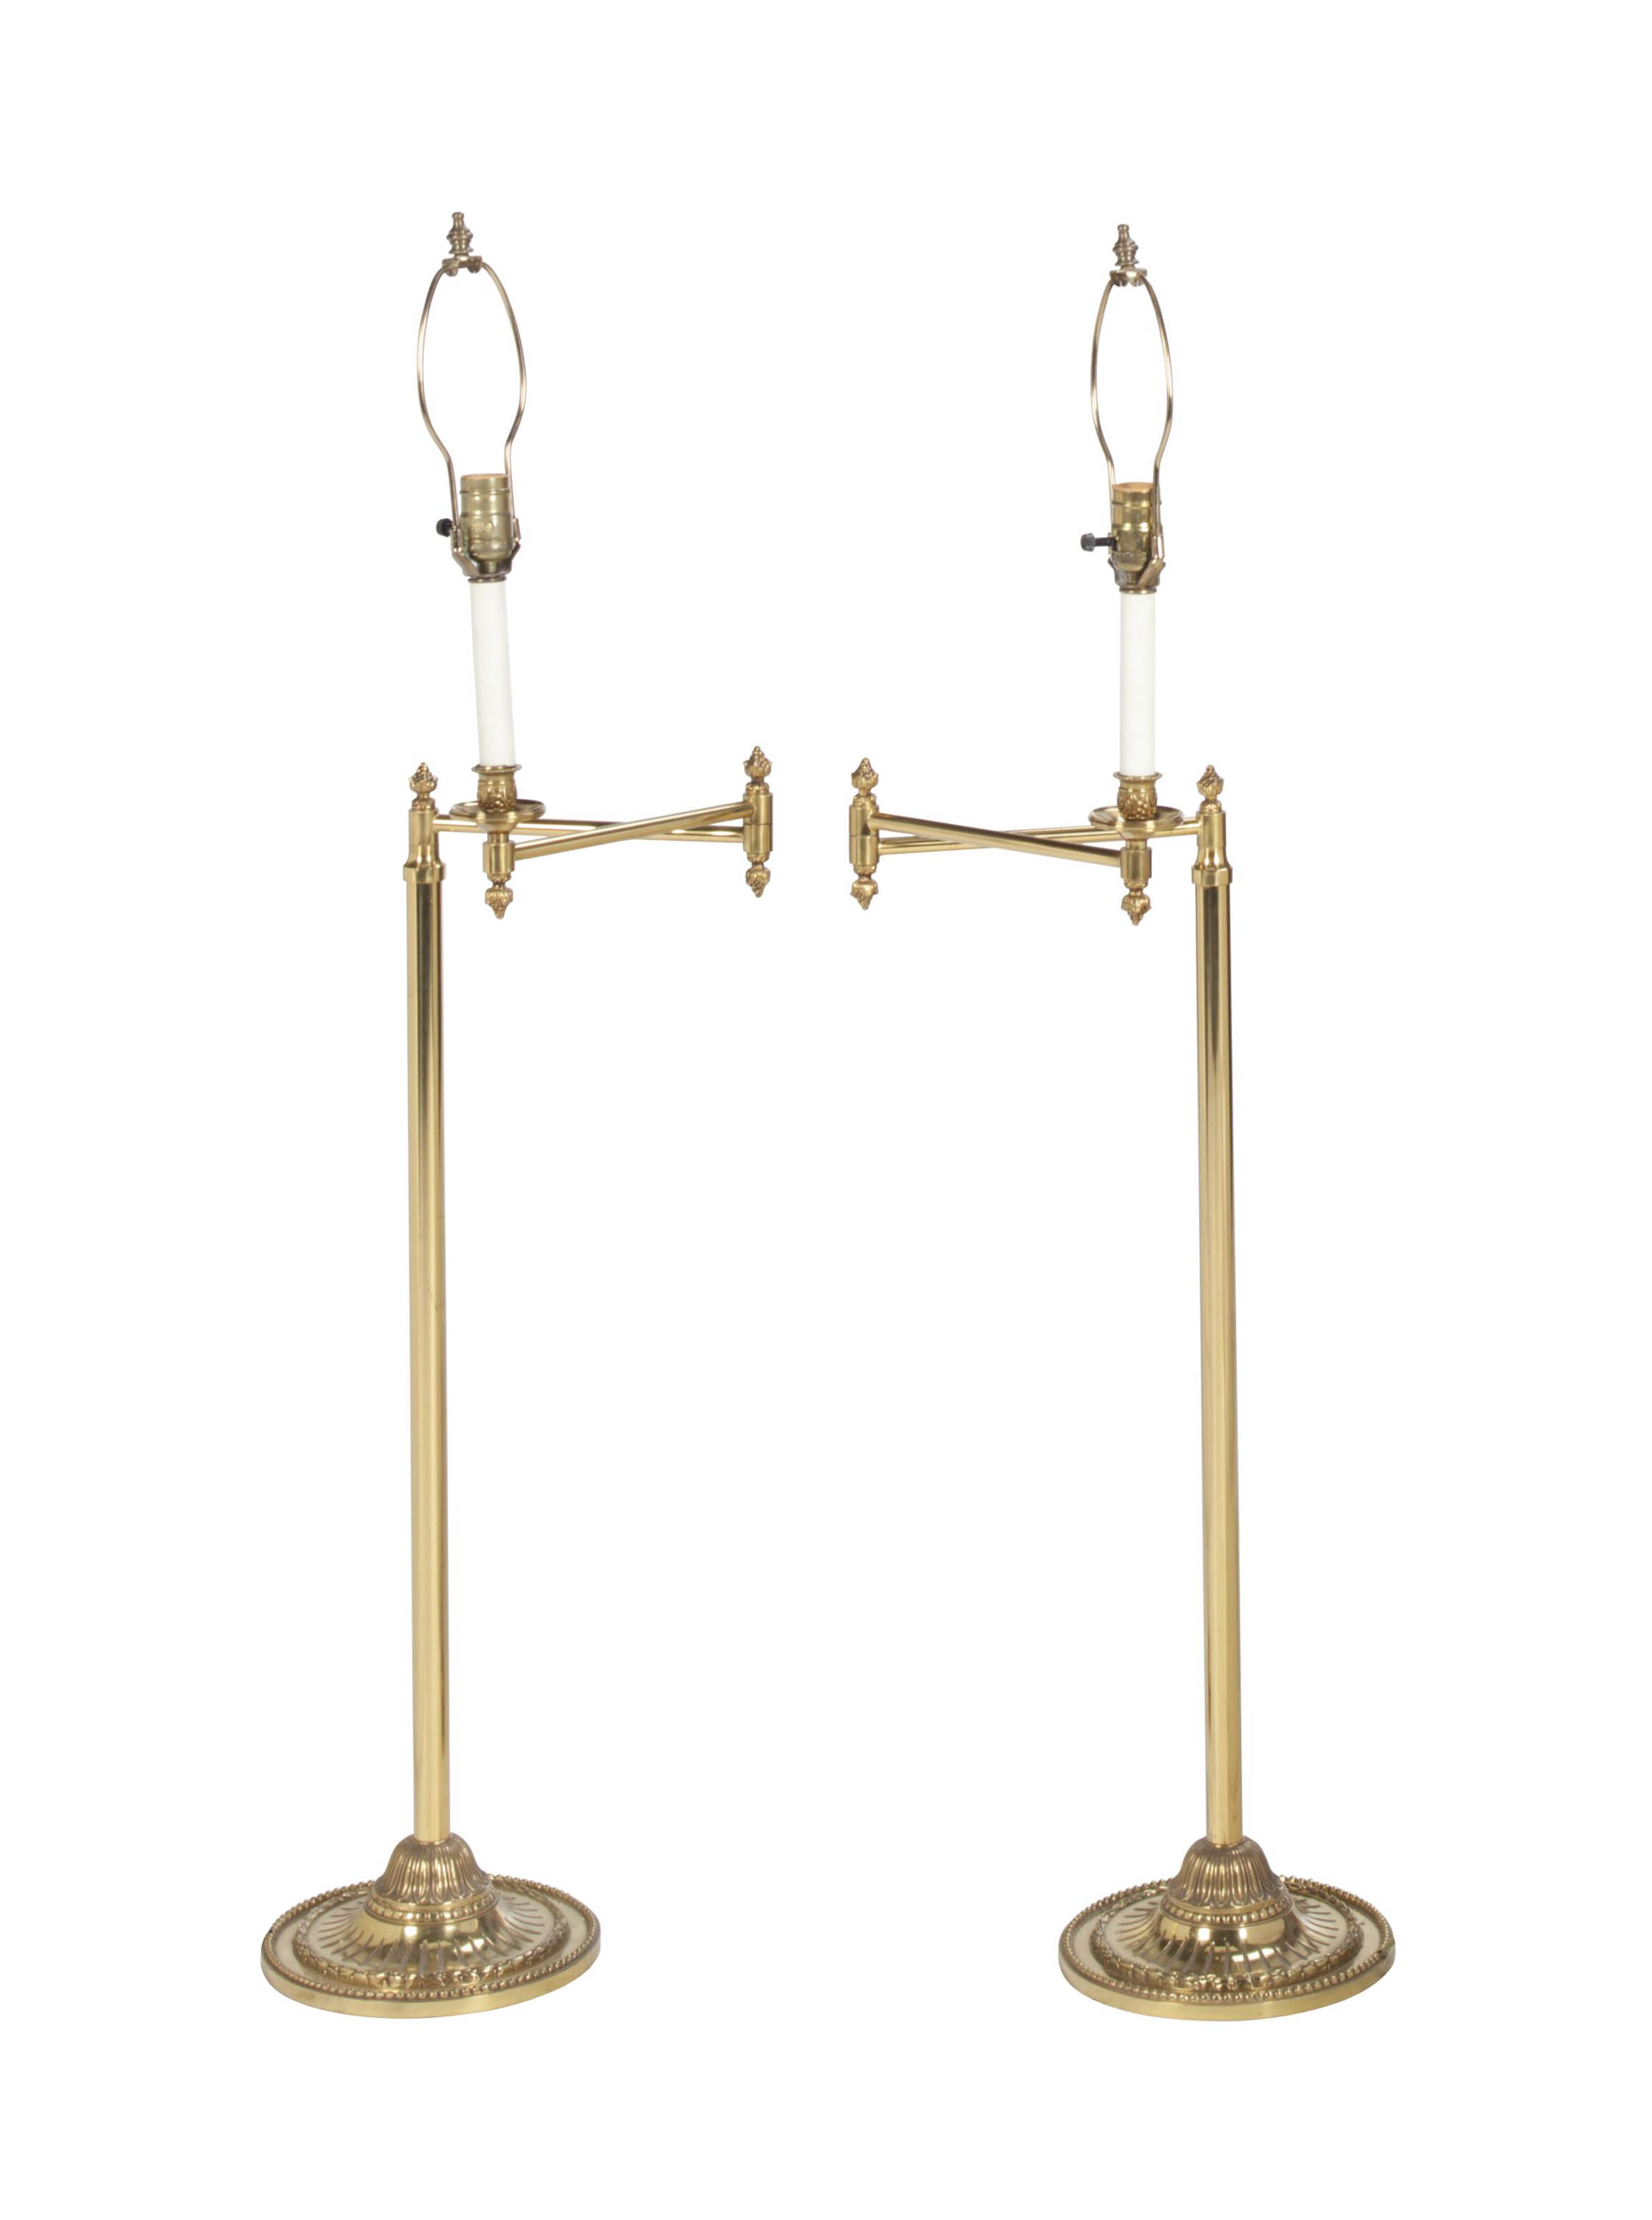 A PAIR OF BRASS SWING-ARM FLOO